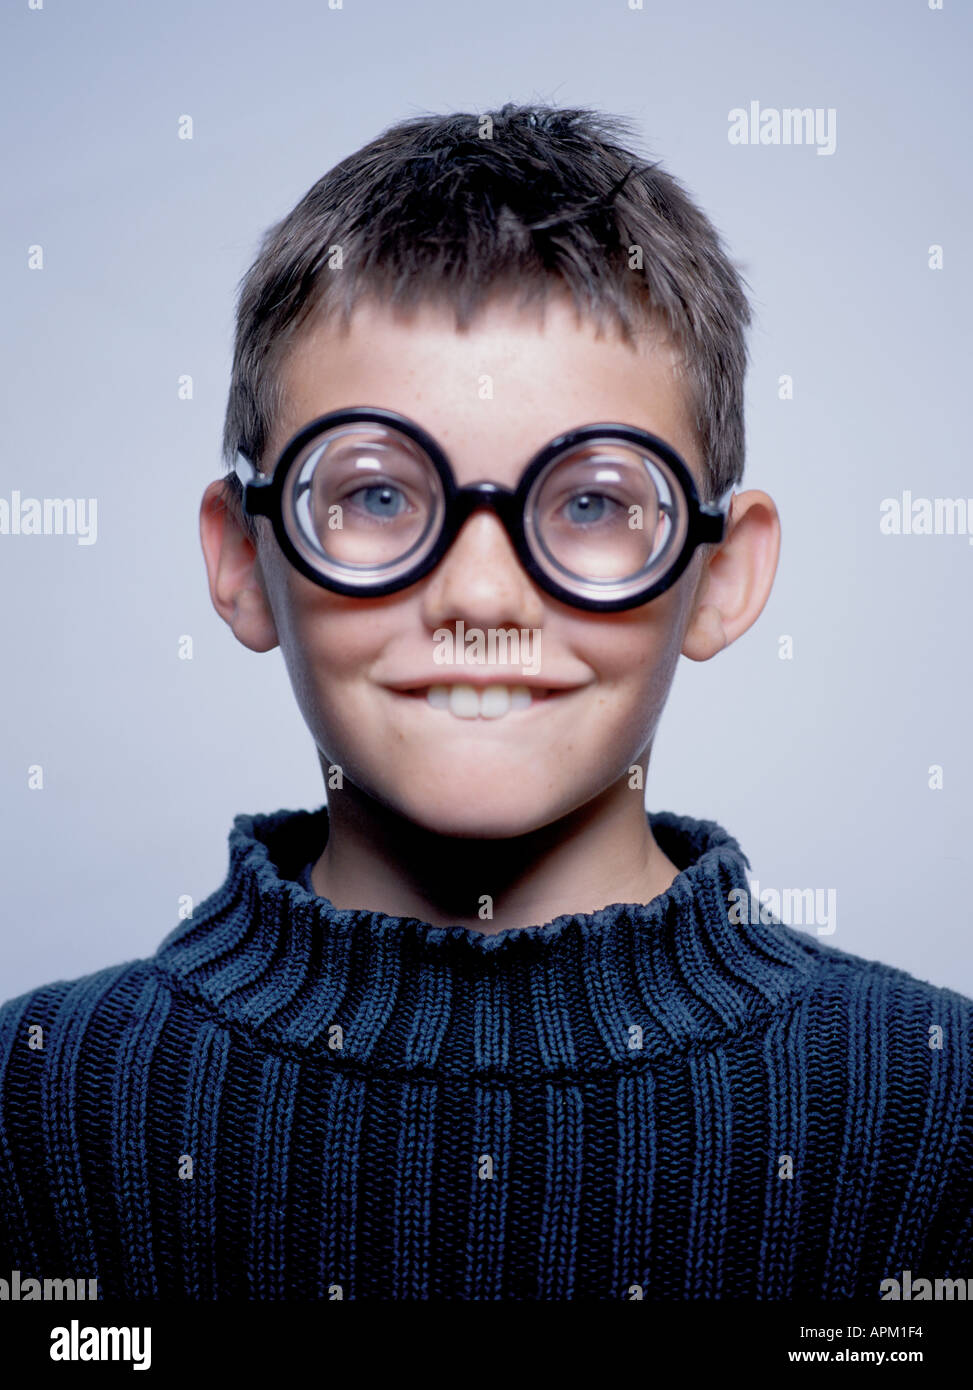 Portrait of a goofy young boy wearing thick glasses - Stock Image